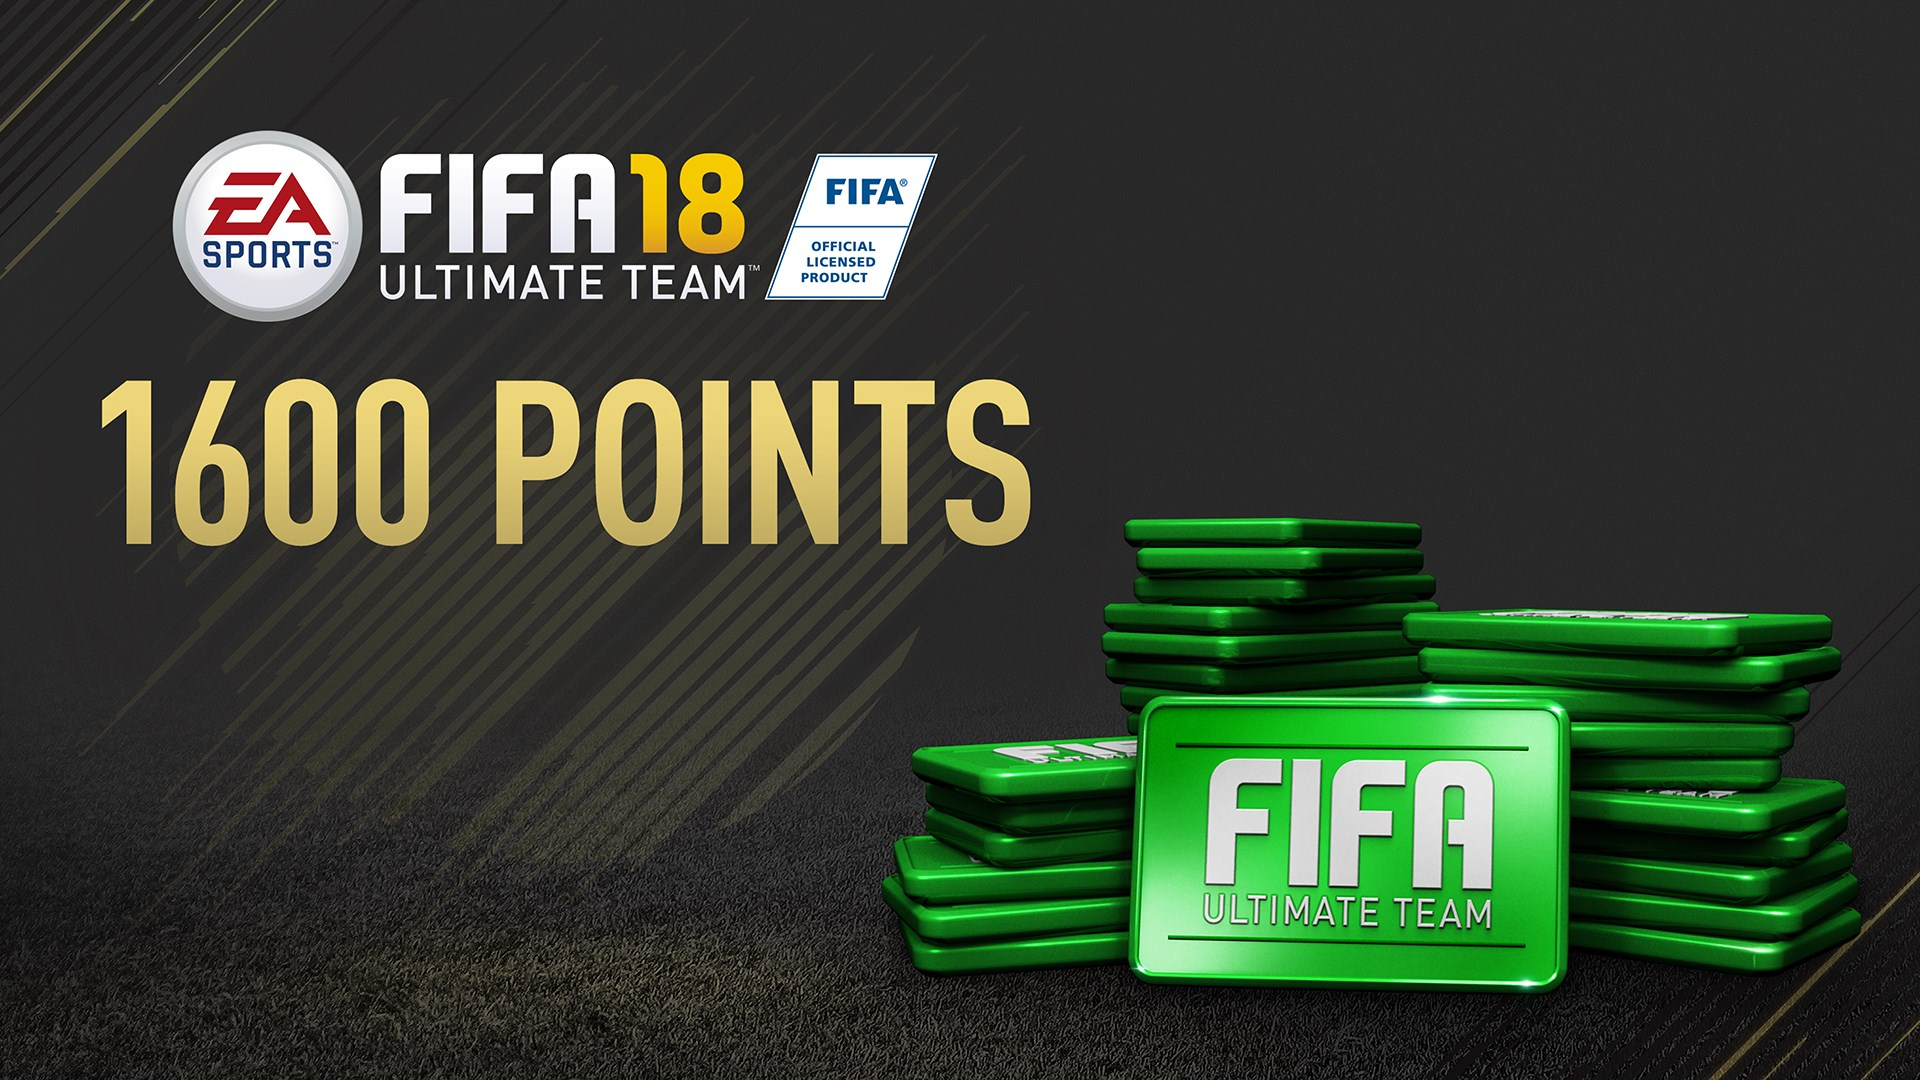 Pacchetto 1600 FIFA 18 Points